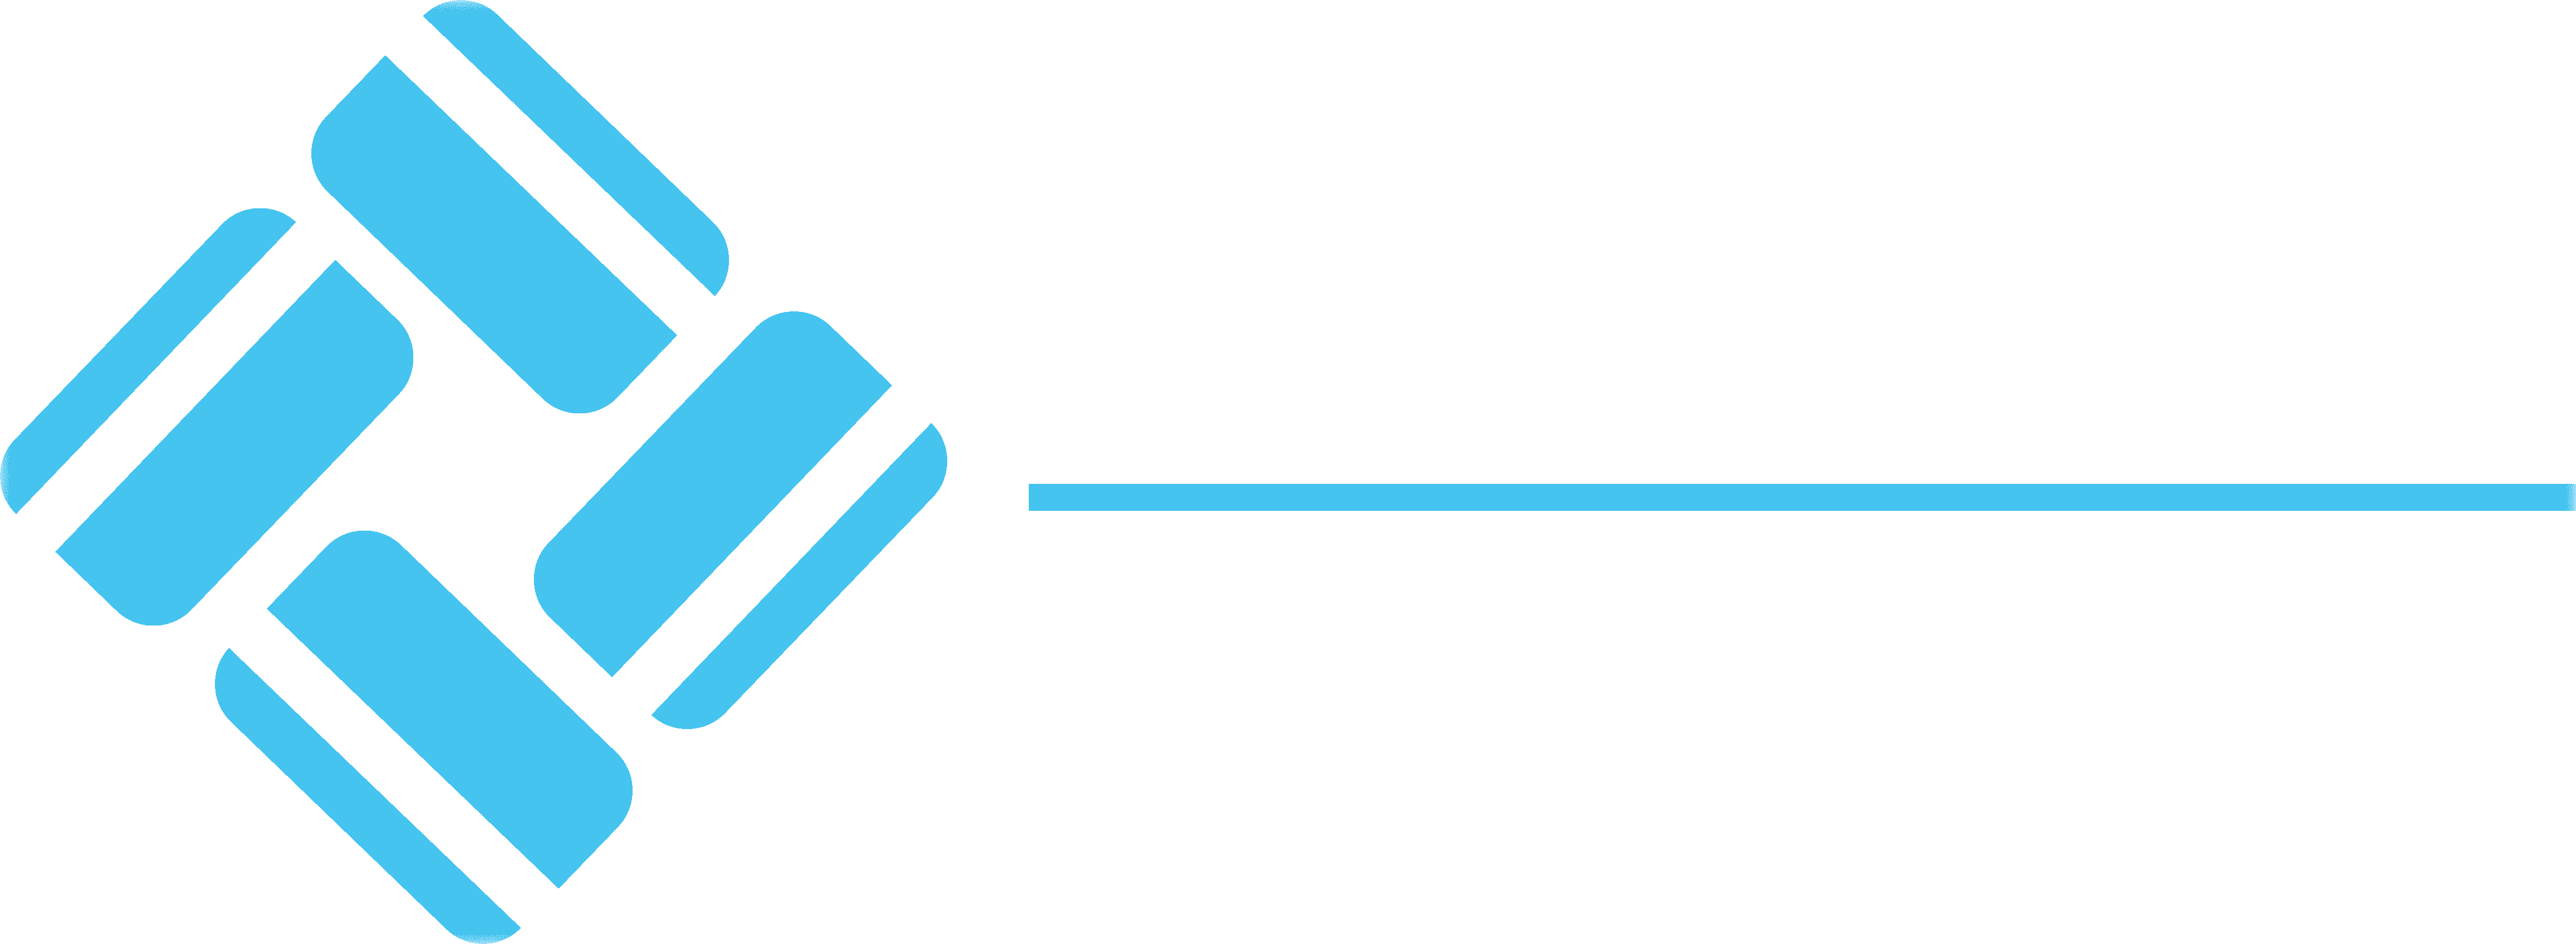 AFCC American Fair Credit Council